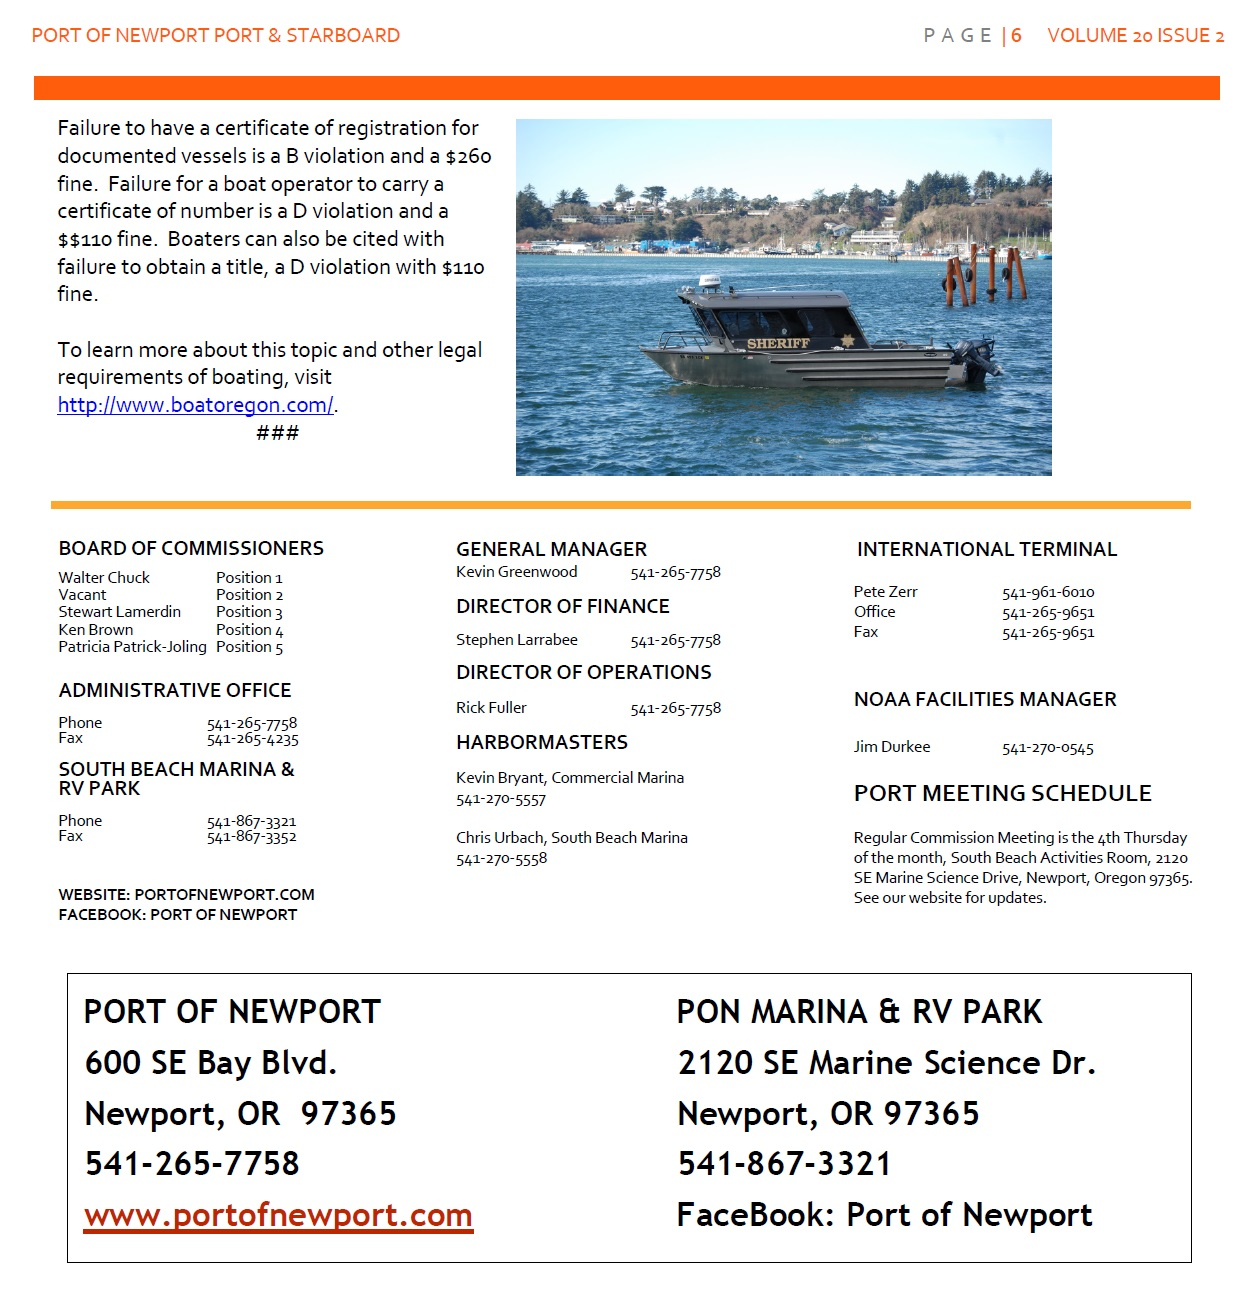 Jun2016 - Port of Newport - Port & Starboard Newsletter Volume 20 Issue 2 online edition 6